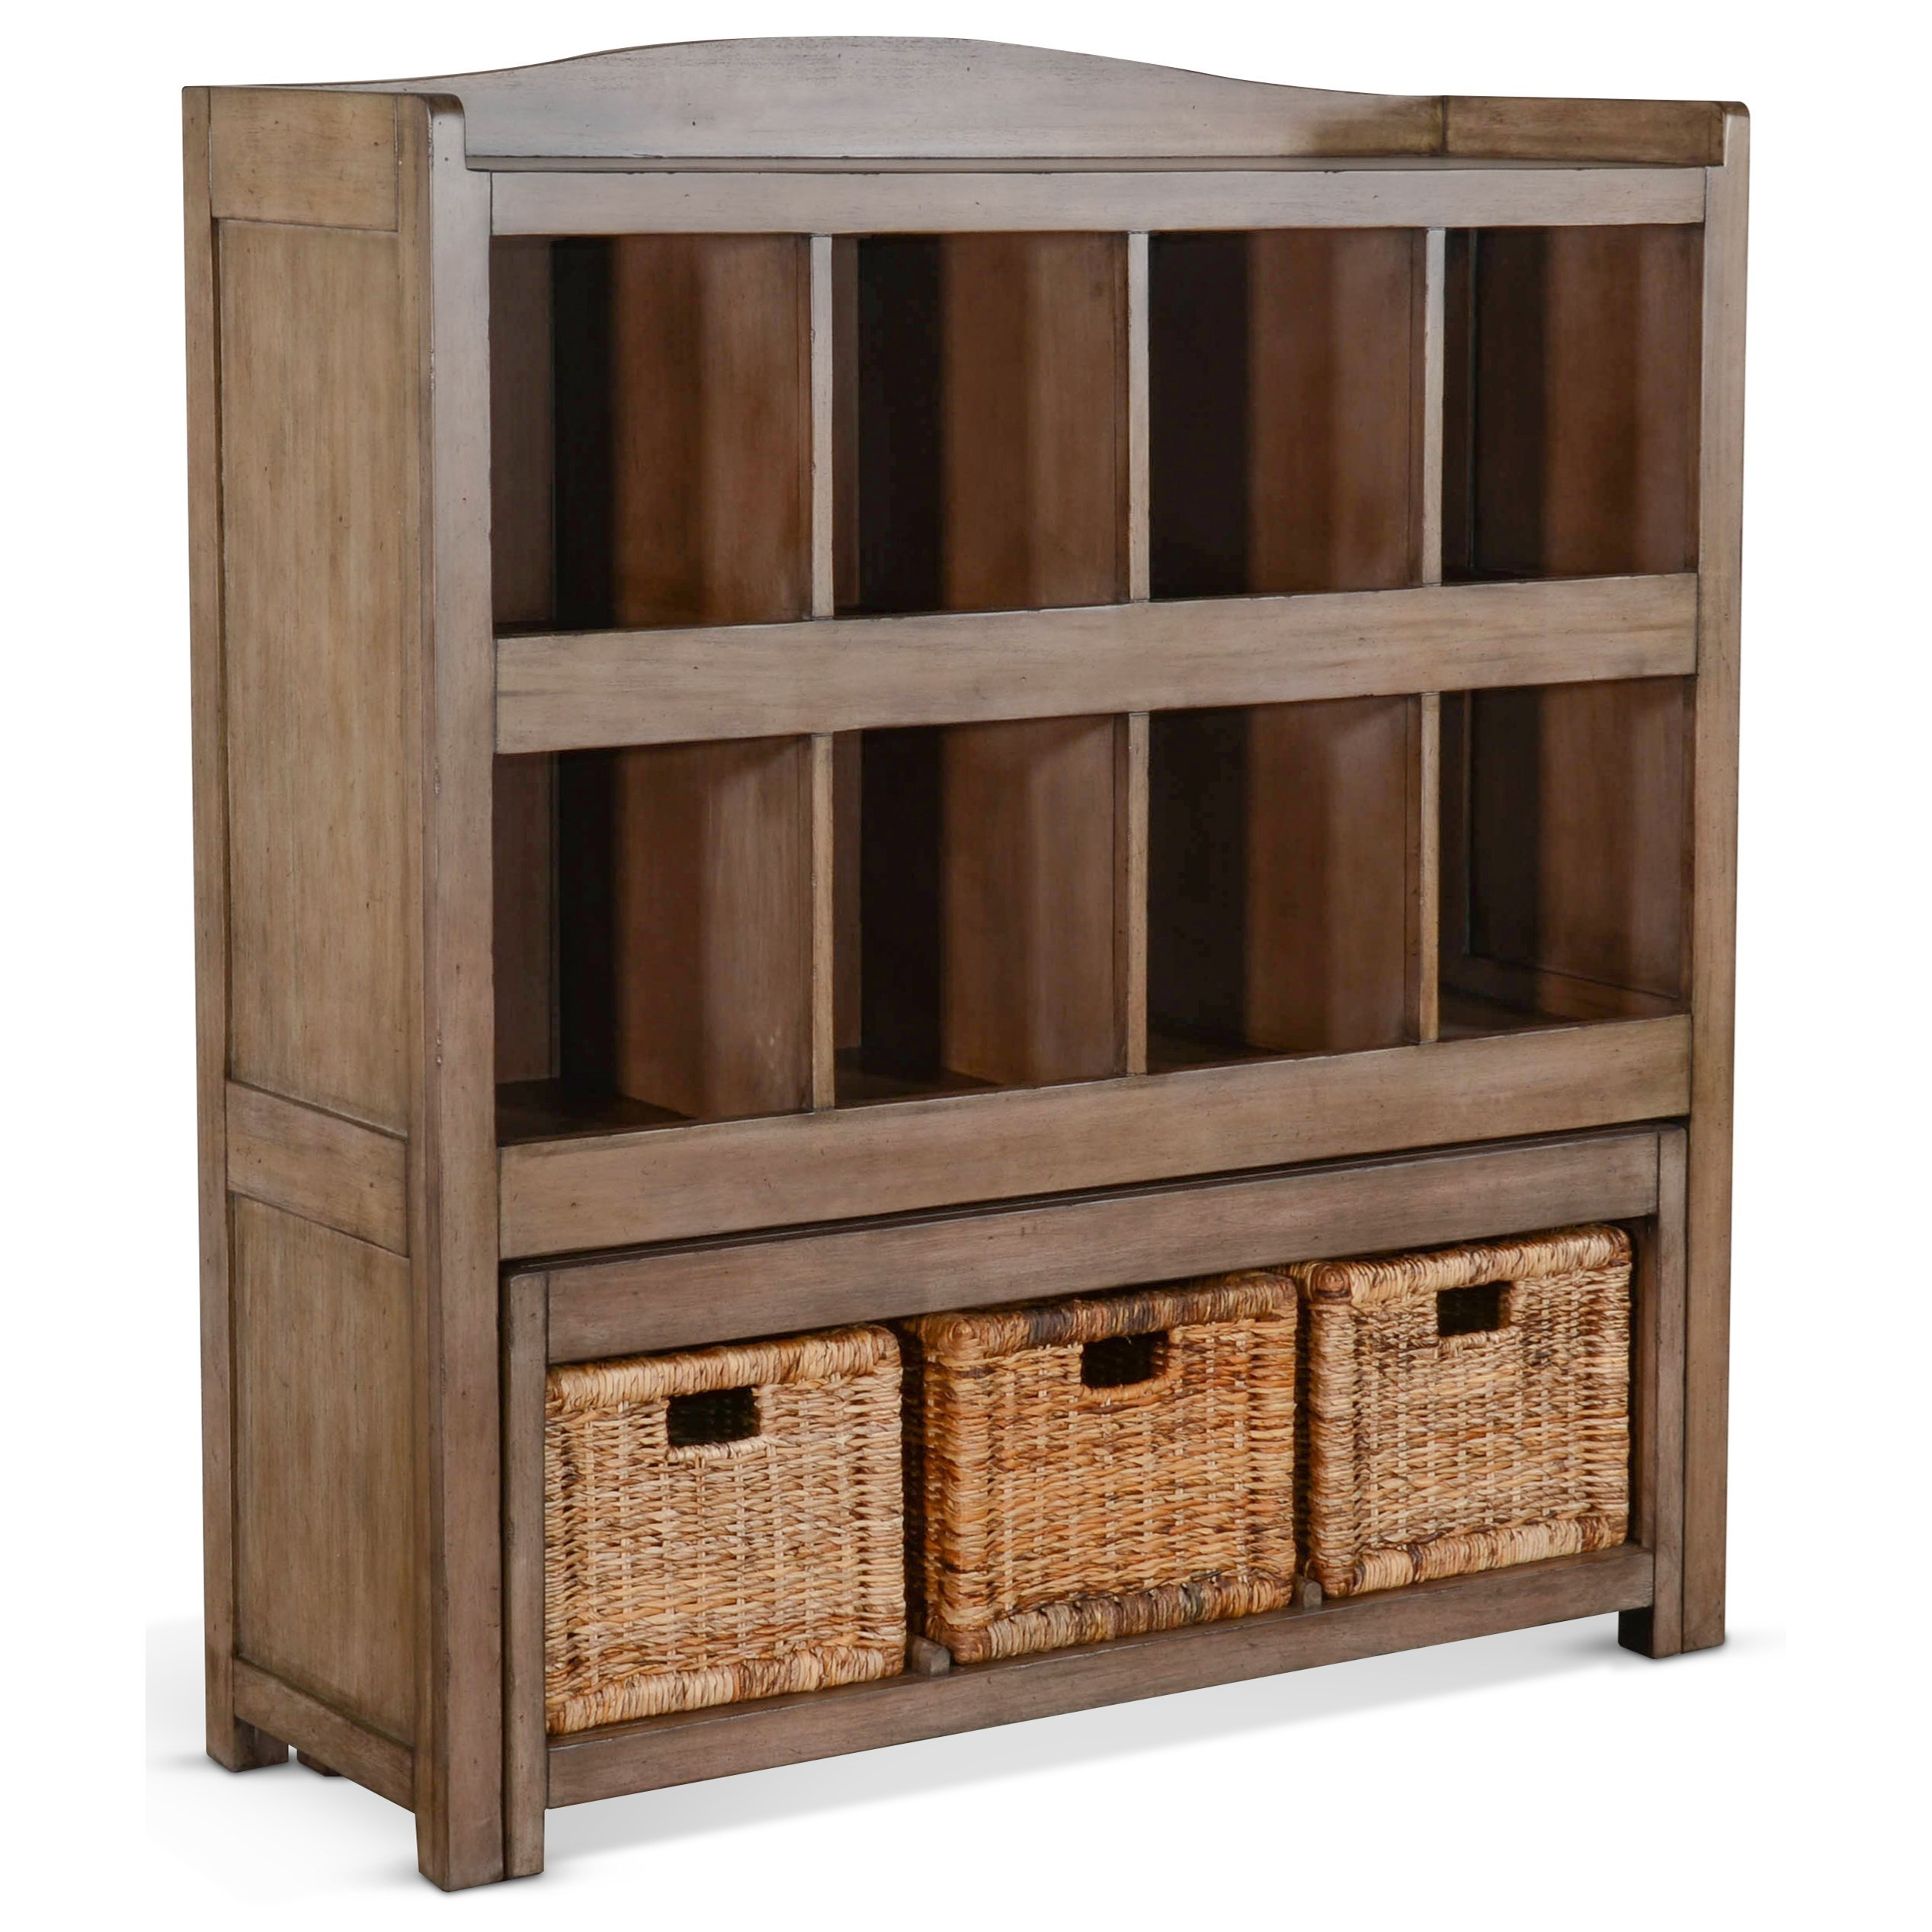 2993 Storage Bookcase w/ Trundle Bench by Sunny Designs at Fashion Furniture